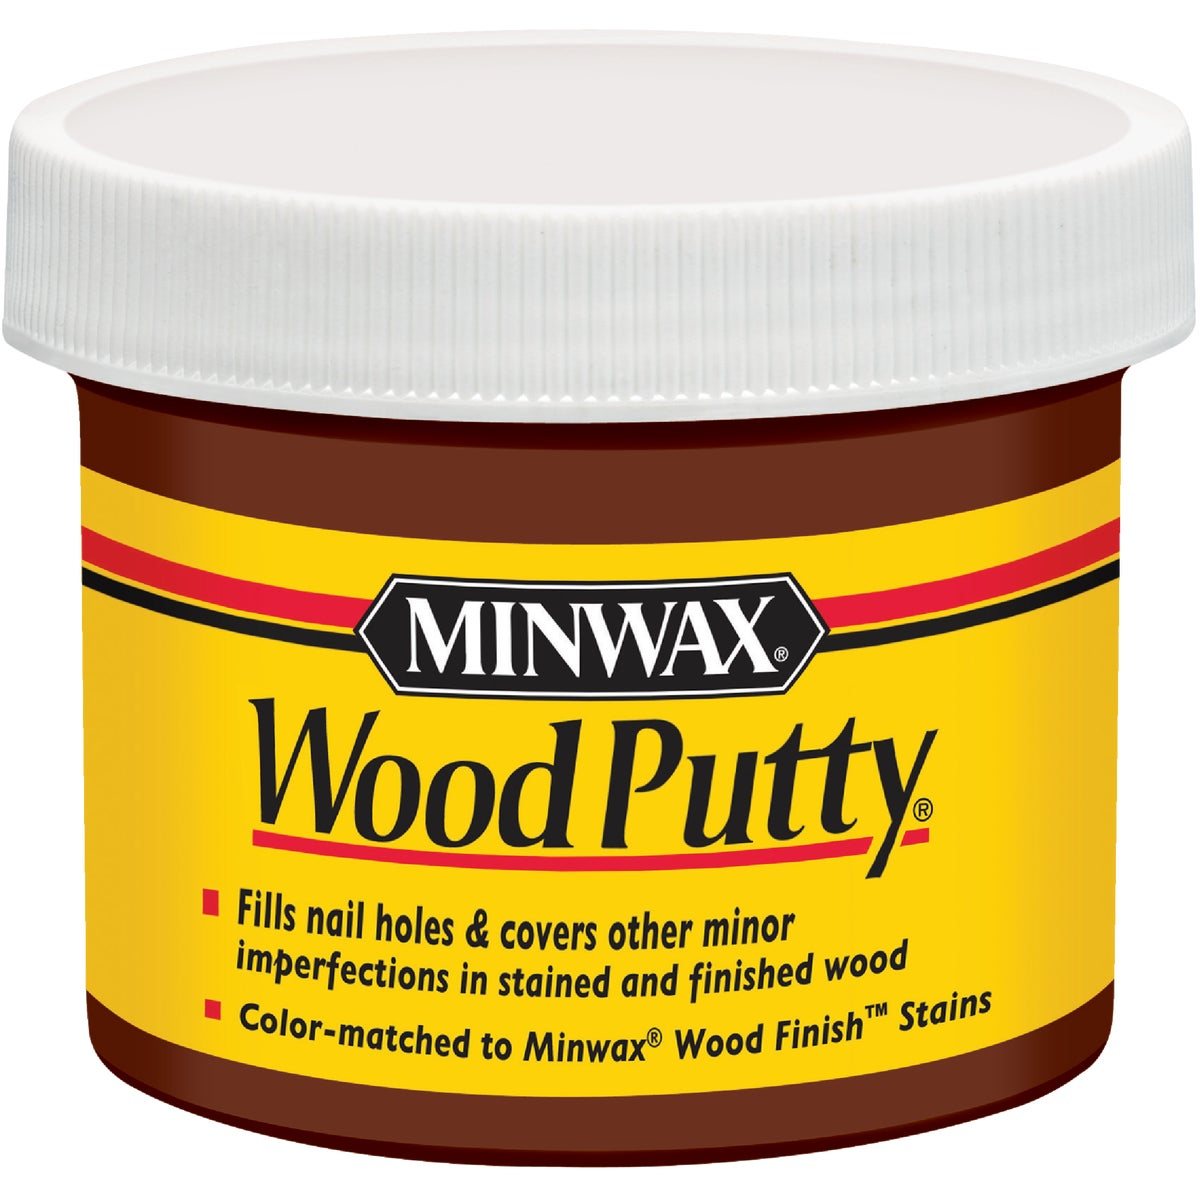 RED MAHOGANY WOOD PUTTY - 13613 by Minwax Company